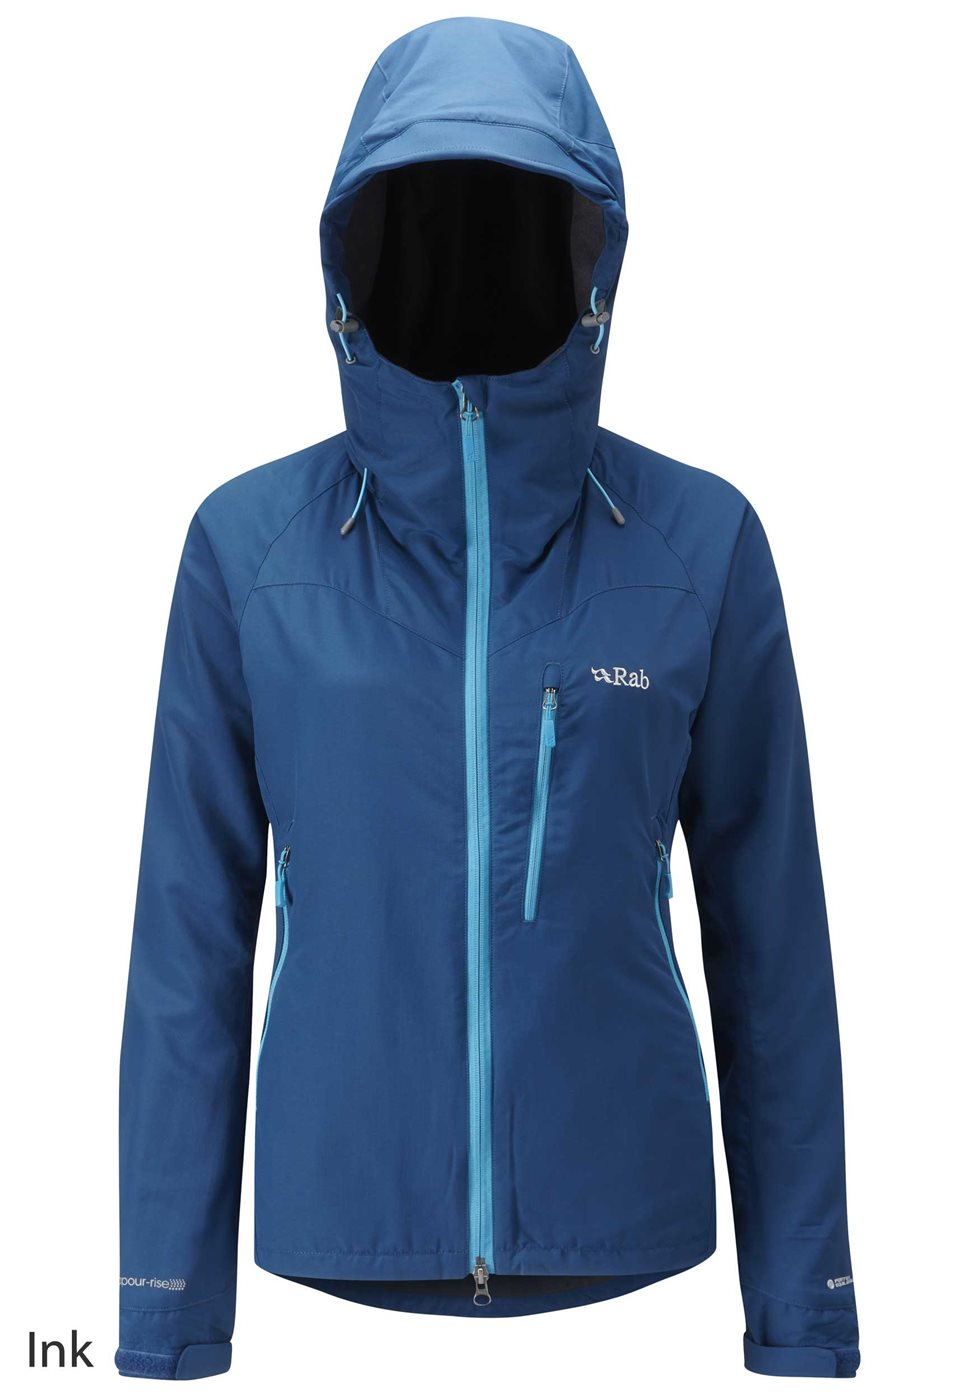 ee740a0c Rab Womens Vapour Rise Jacket 2017 - Click to view larger image